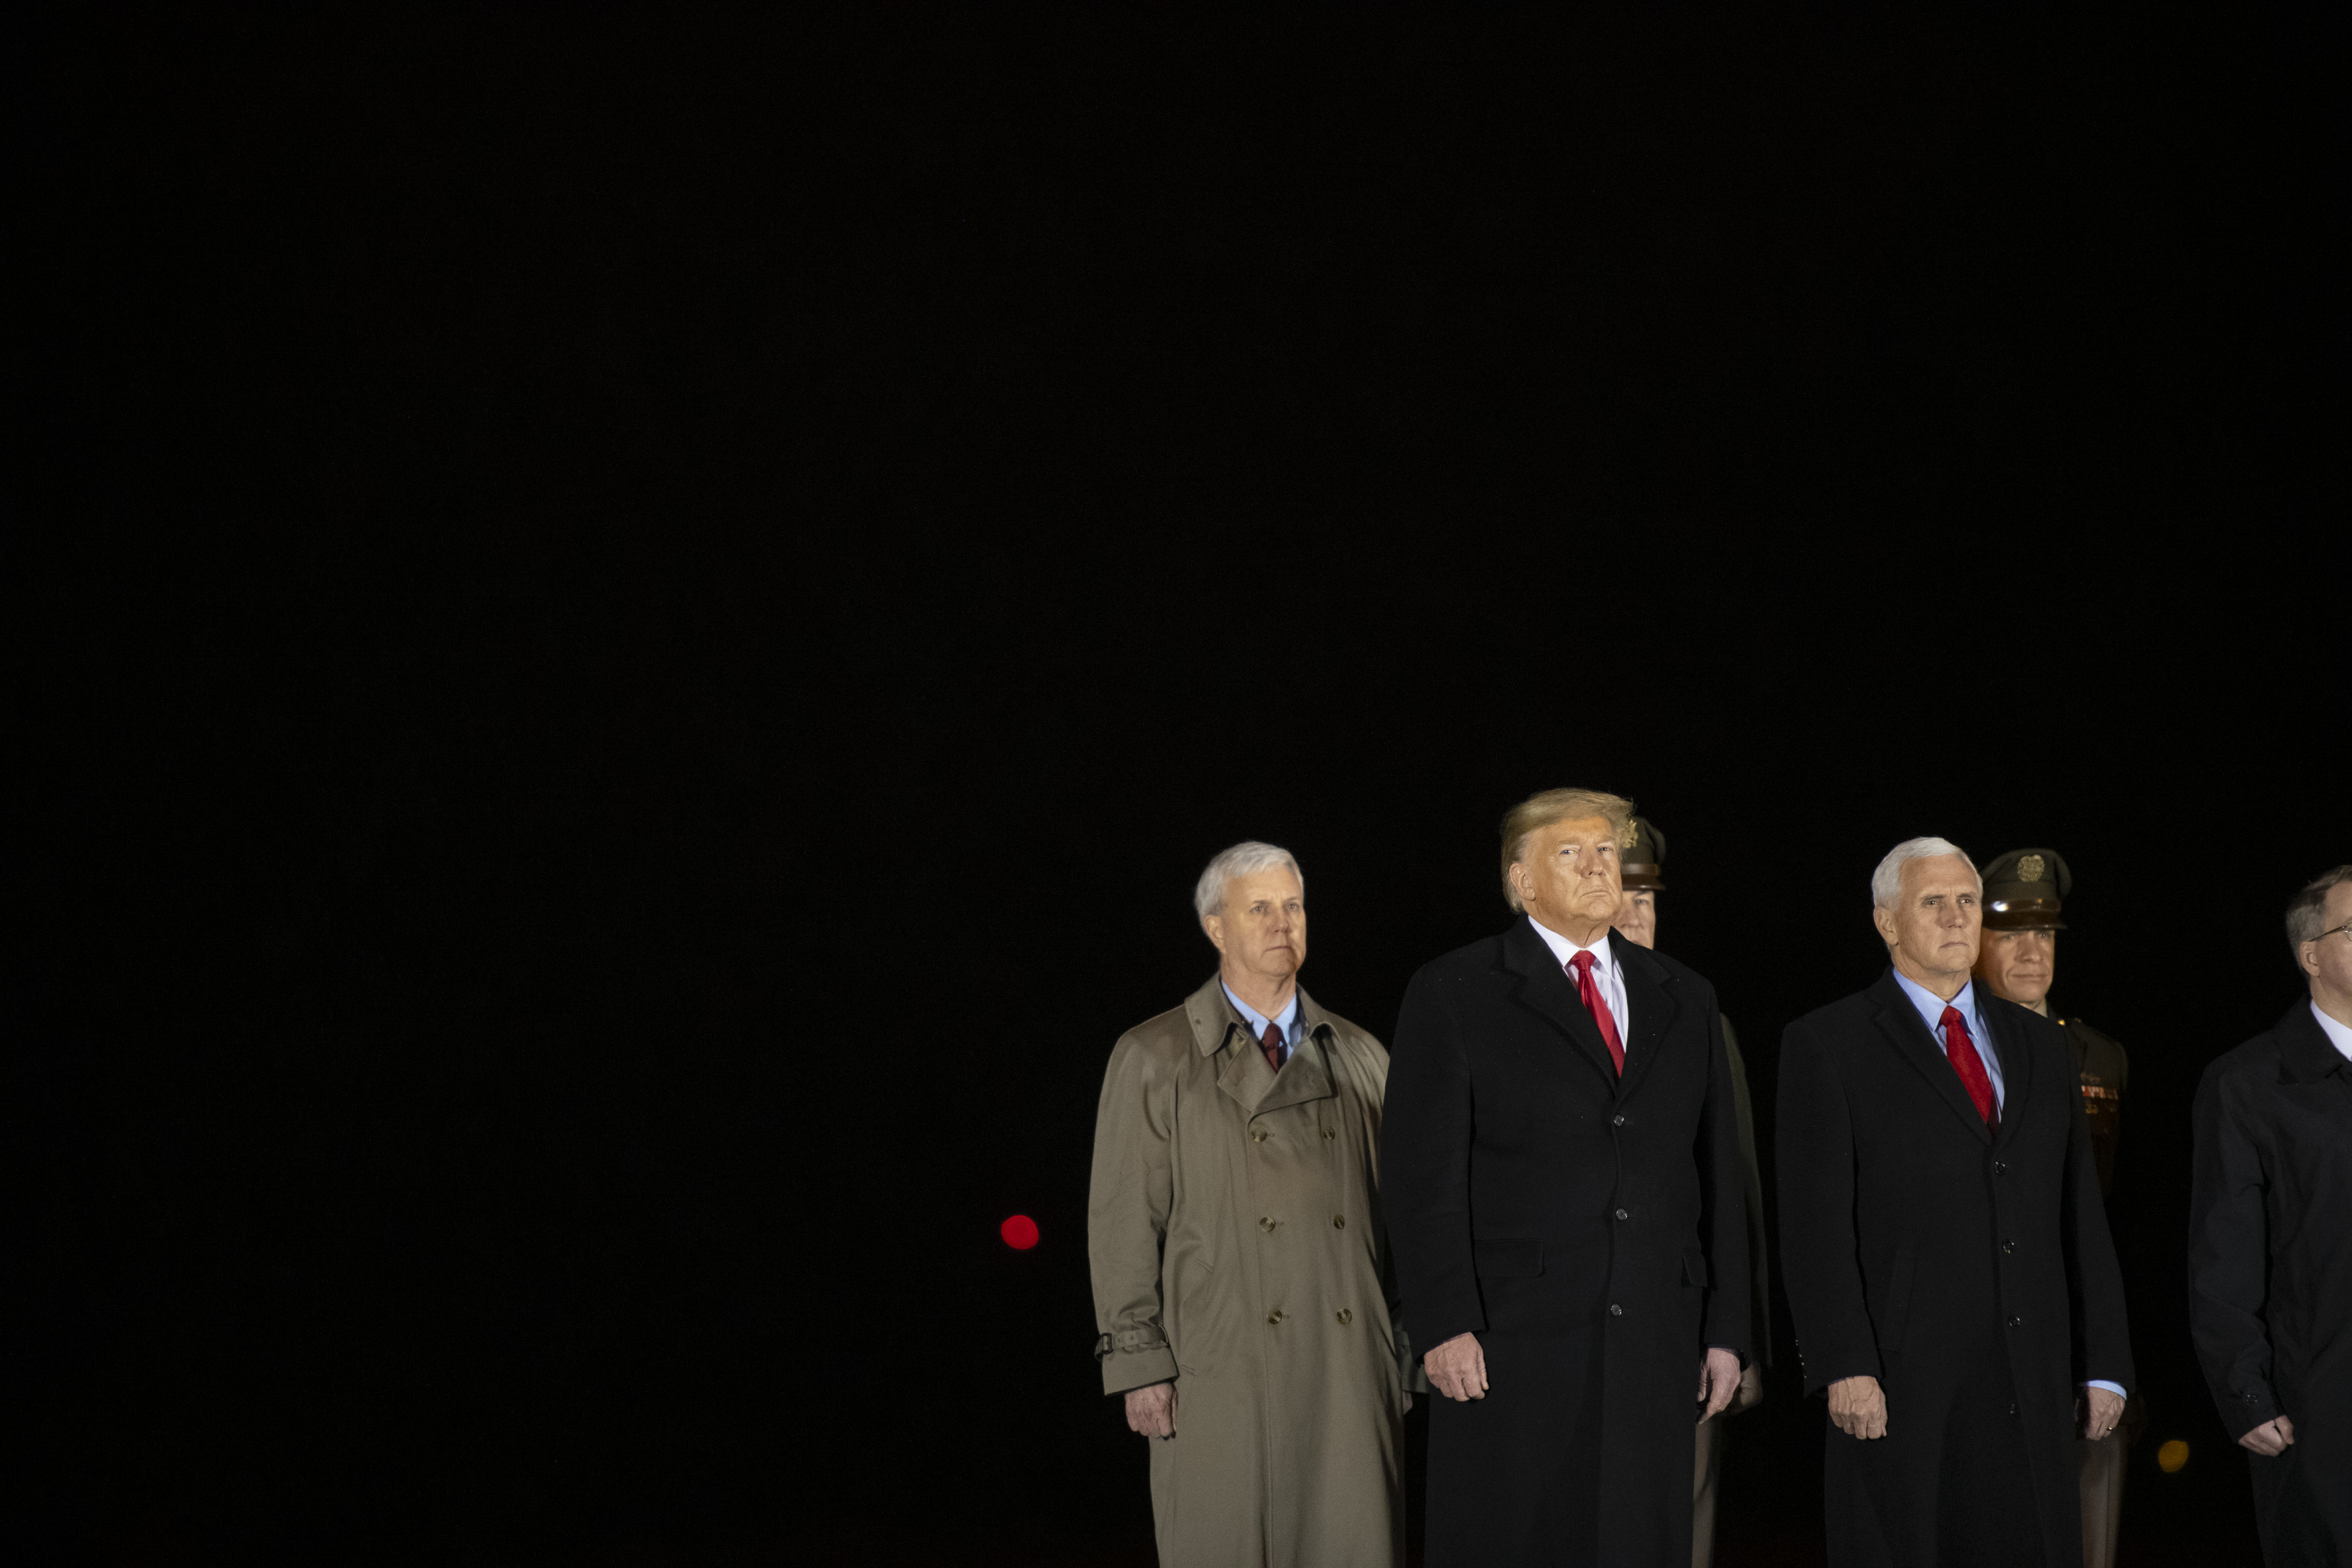 DOVER, DE - FEBRUARY 10: (2nd-L) U.S. President Donald Trump and Vice President Mike Pence attend a dignified transfer for fallen service members U.S. Army Sgt. 1st Class Javier J. Gutierrez, 28, and Army Sgt. 1st Class Antonio R. Rodriguez, 28, at Dover Air Force Base on February 10, 2020 in Dover, Delaware. Both soldiers were both killed in an attack in the Nangarhar province of Afghanistan on Saturday, according to a Department of Defense release. (Photo by Mark Makela/Getty Images)